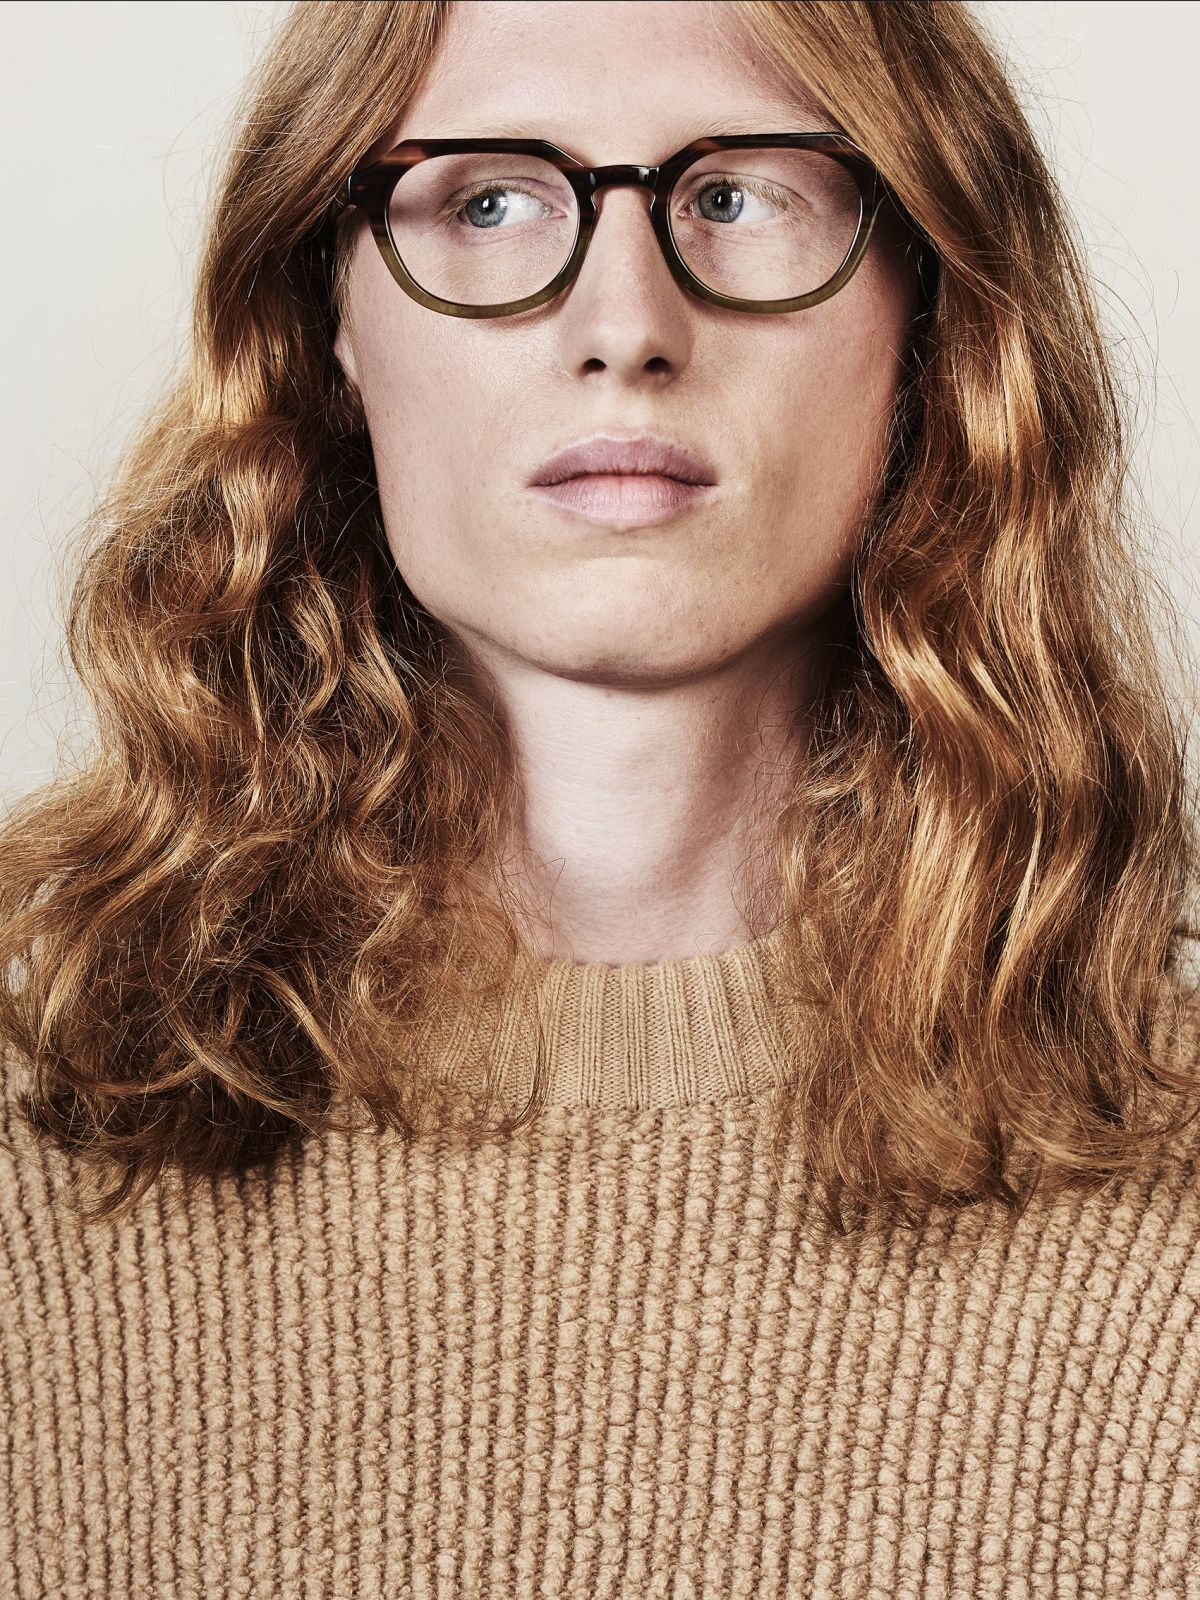 Johnny oval acetate glasses in Hunter Green by Ace & Tate